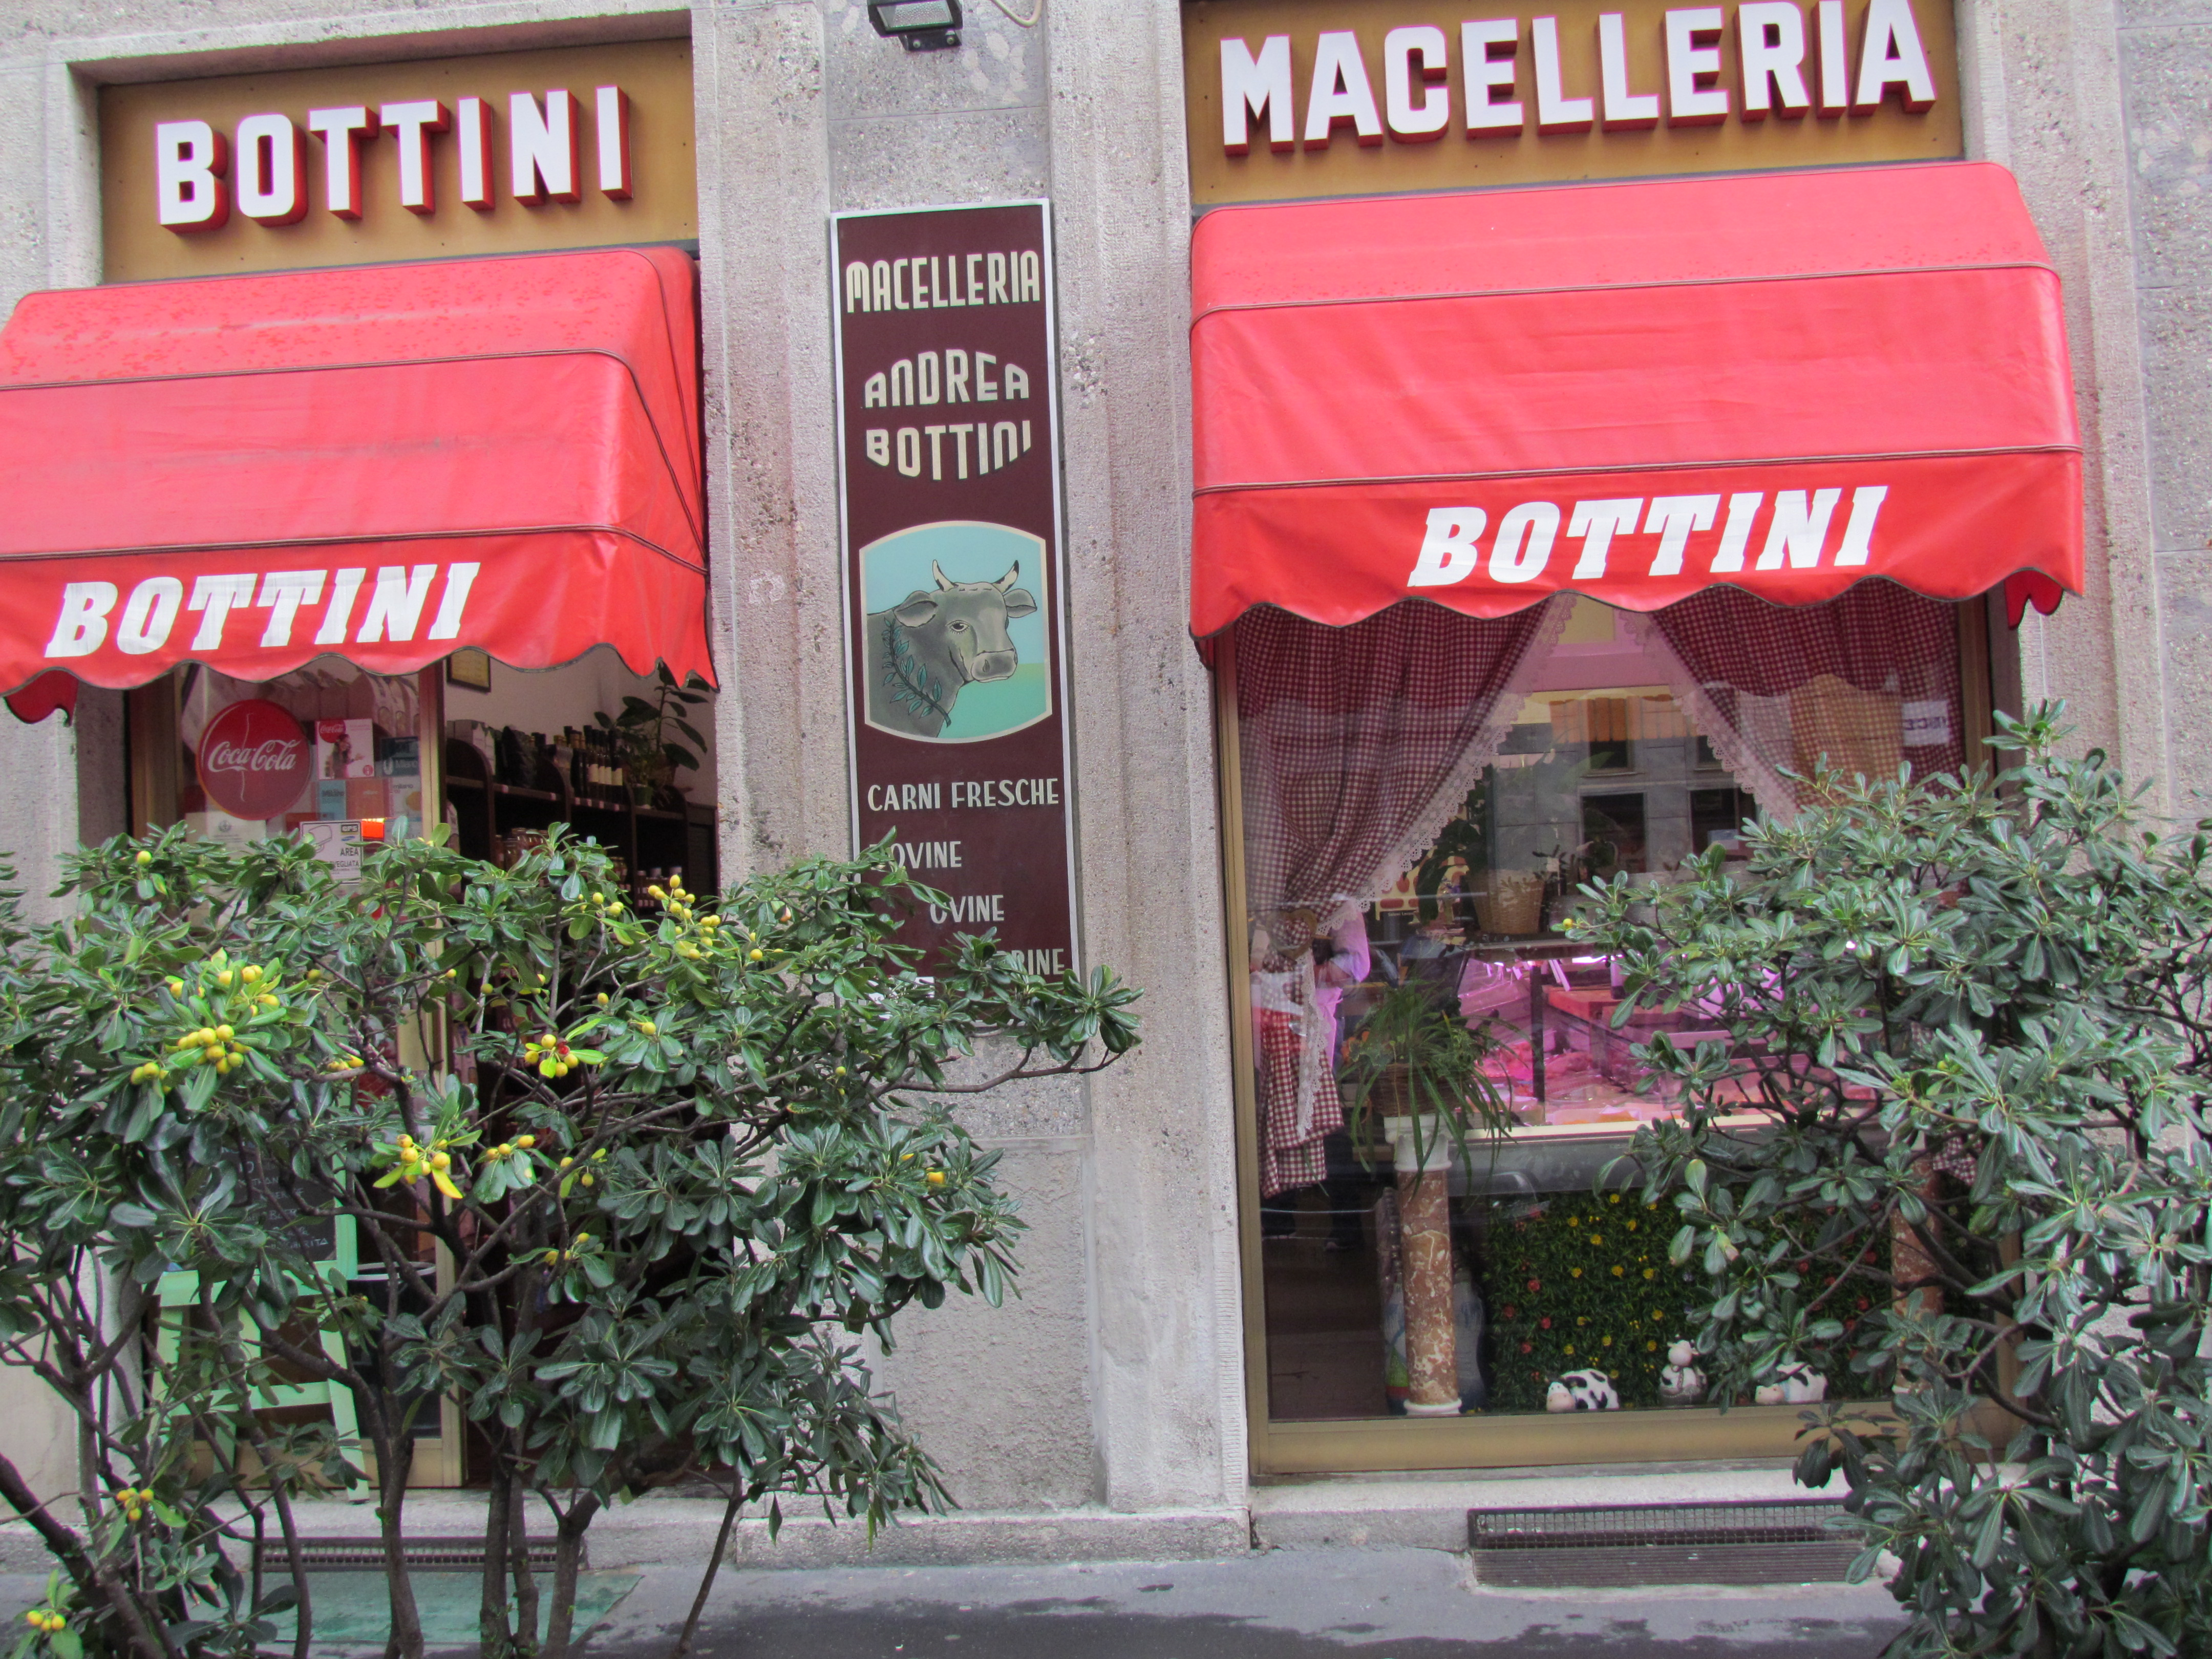 Macelleria Bottini logo